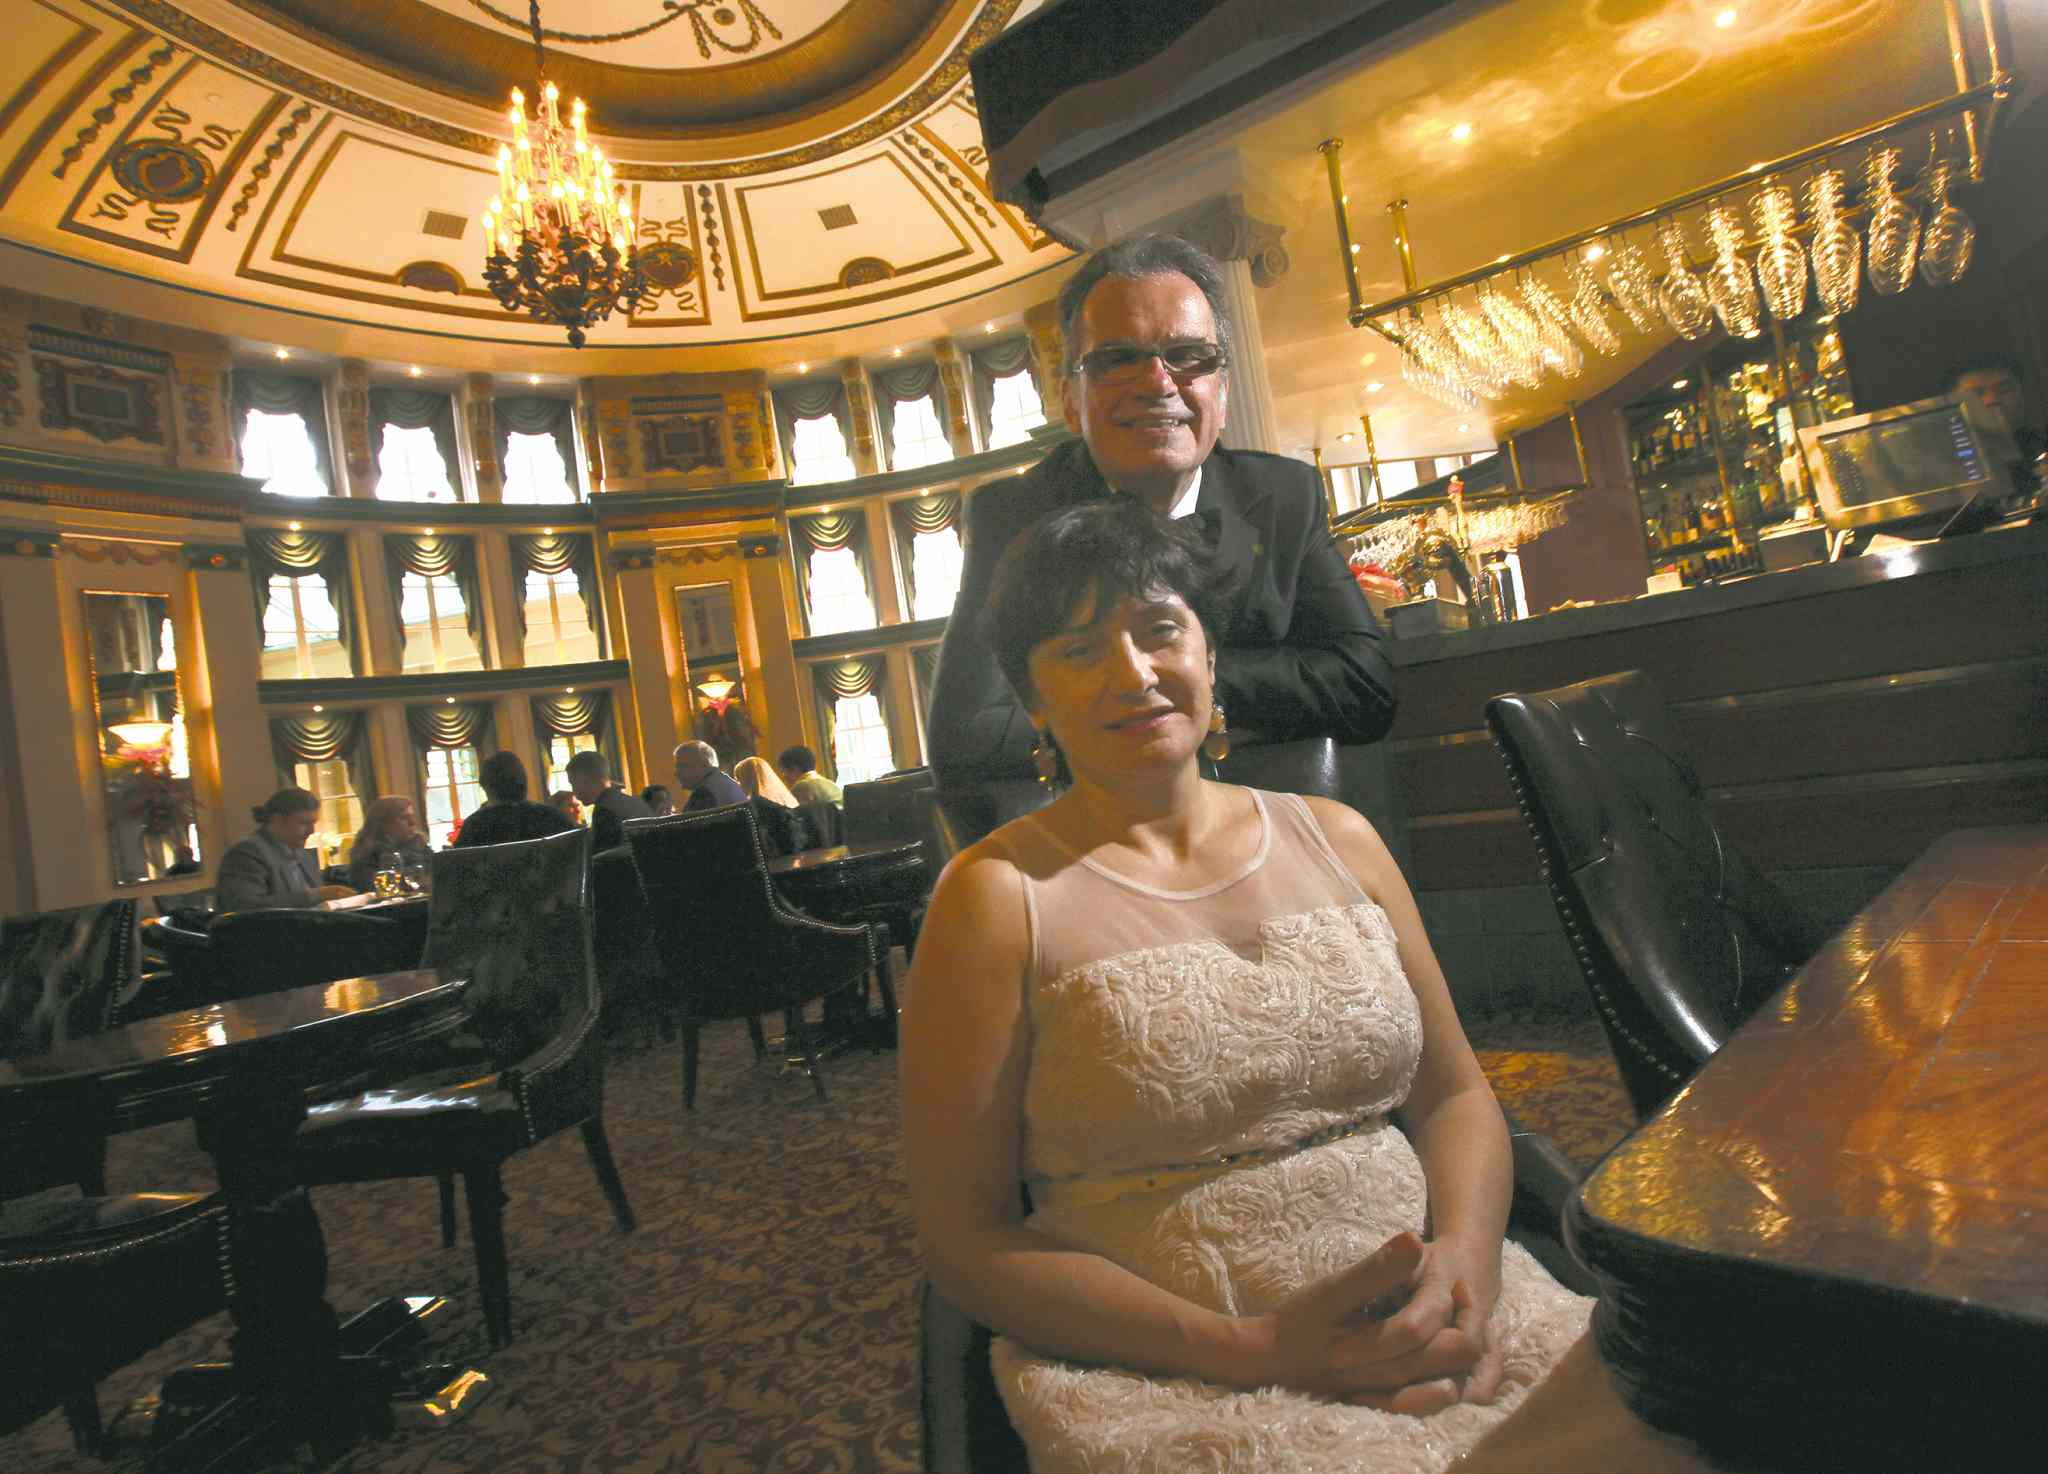 Richard Bel and Ida Albo have overcome tremendous hurdles to make the century-old Fort Garry Hotel a success, once again.